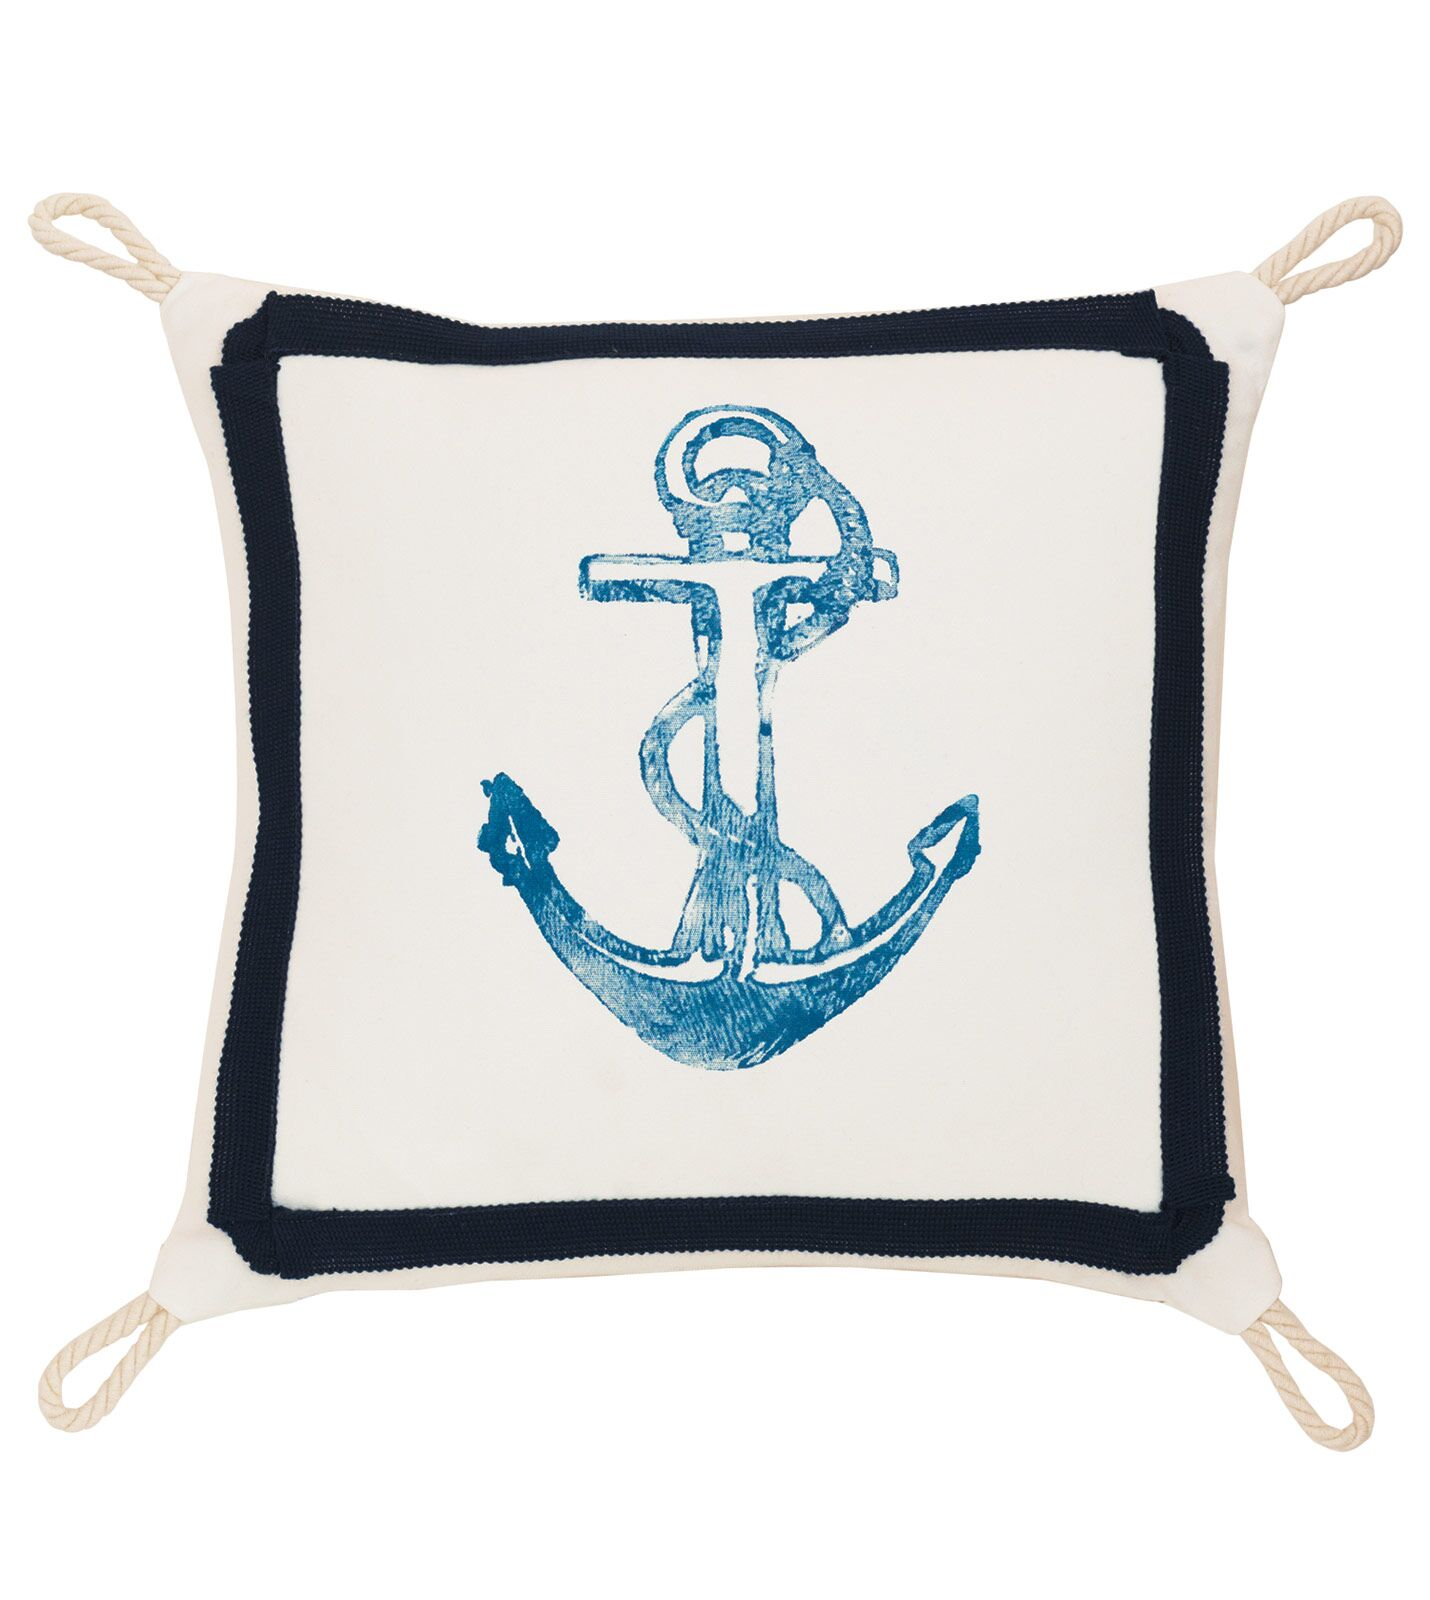 Studio 773 Boat Anchor Loops Indoor/Outdoor Throw Pillow